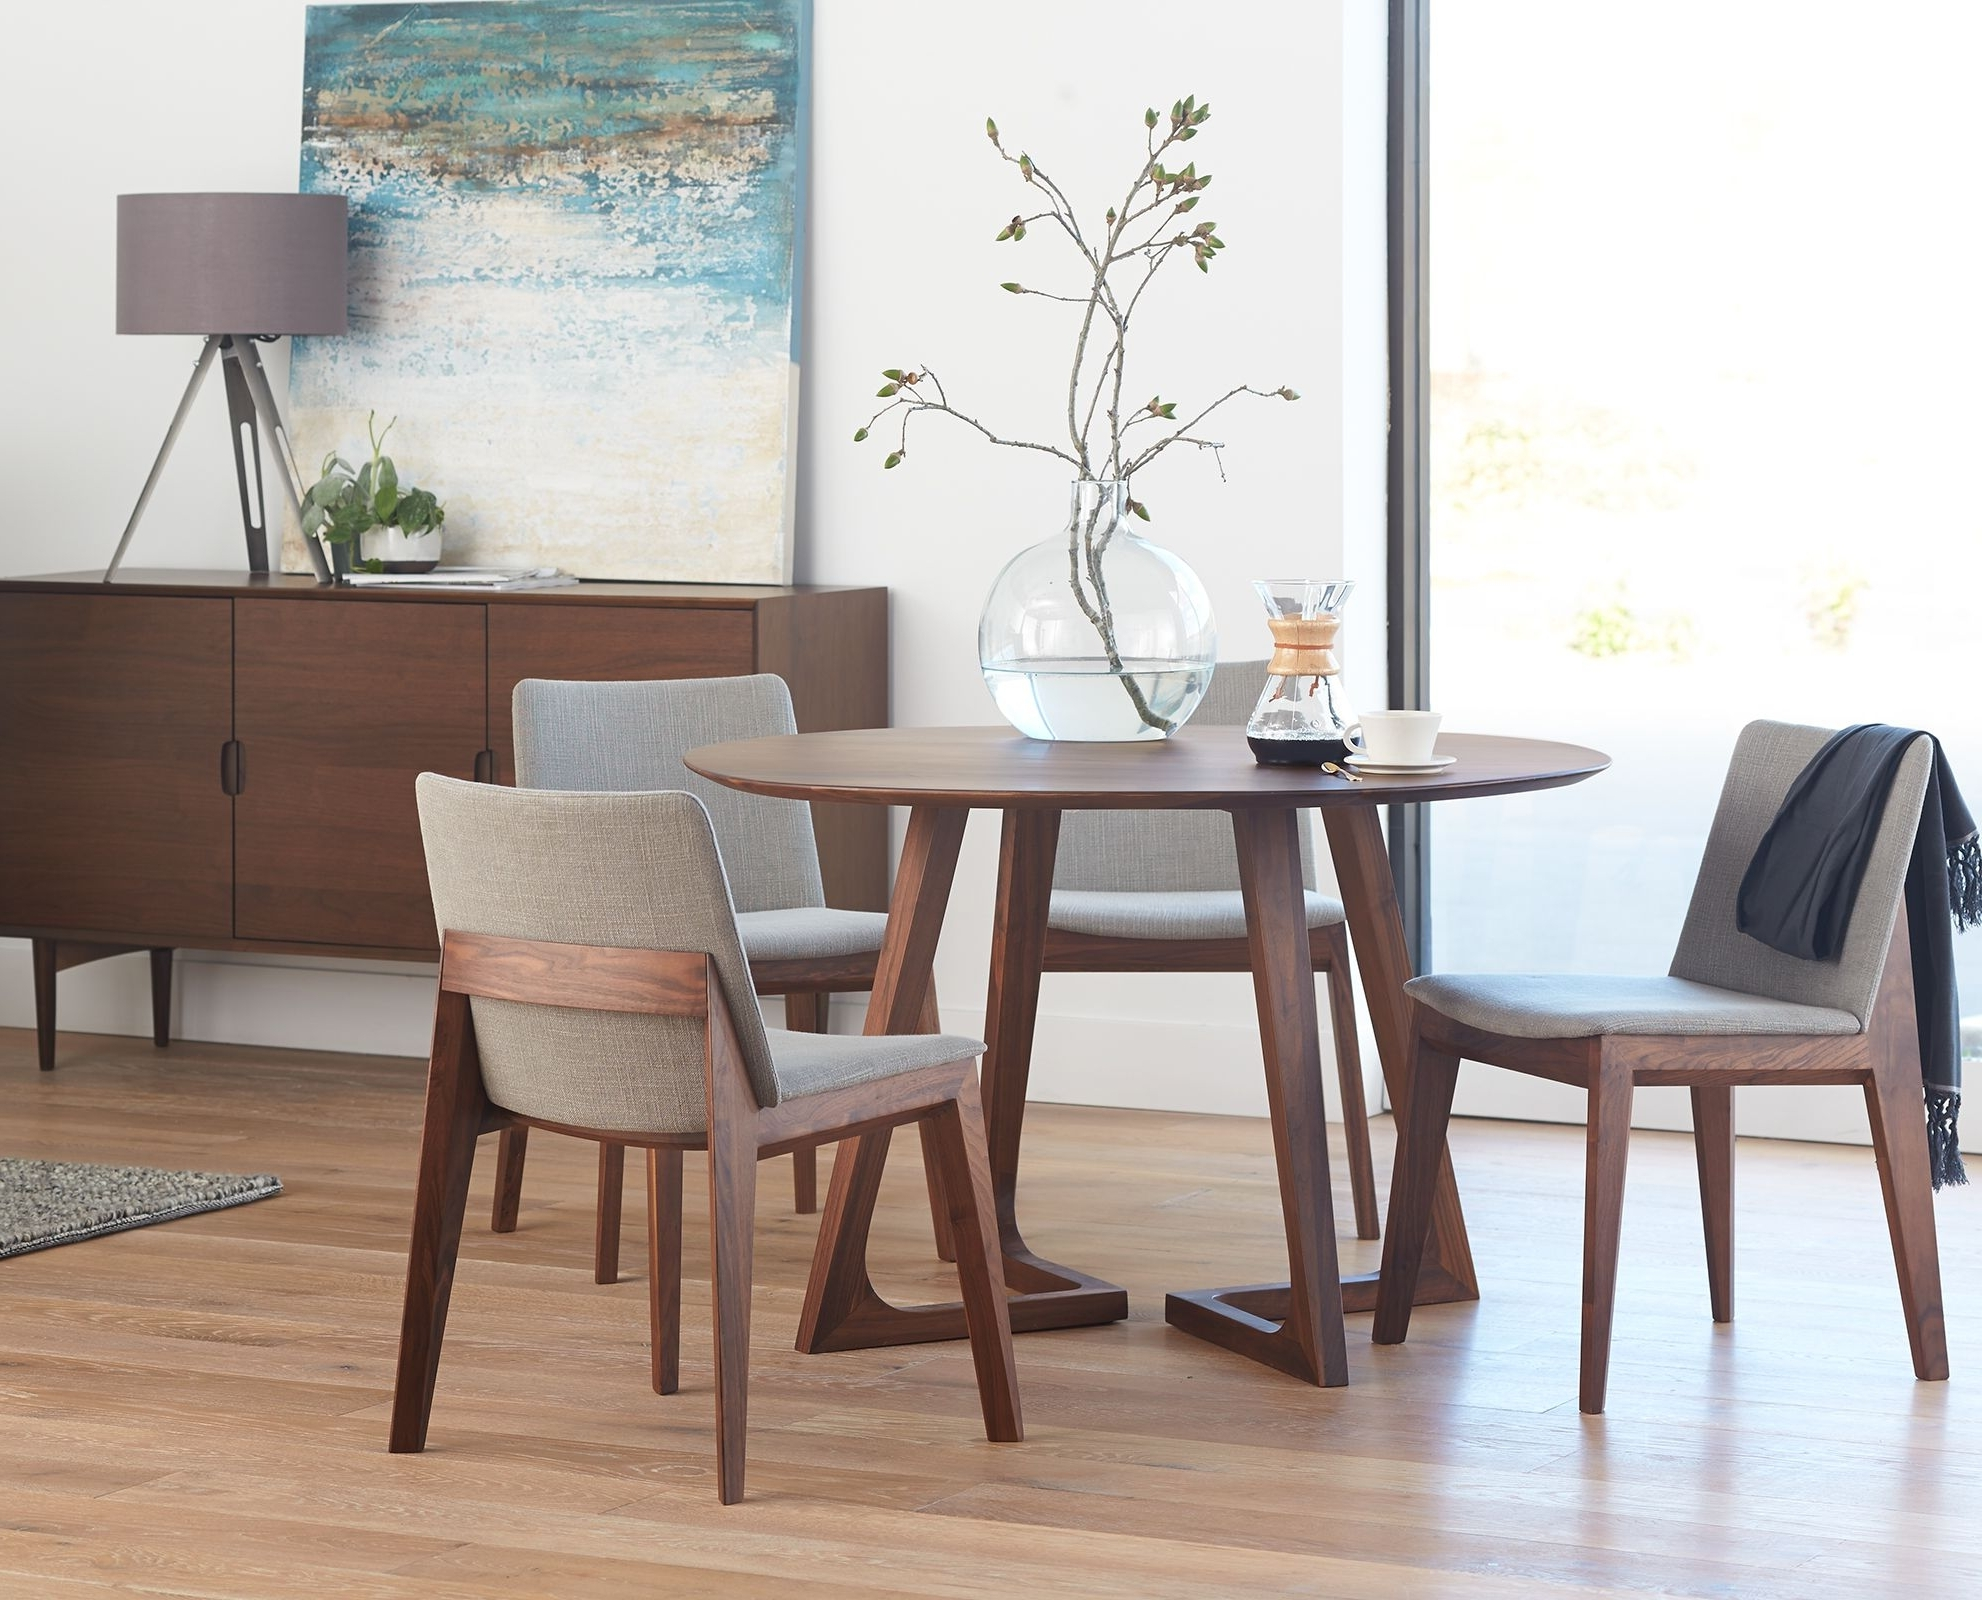 Dining Intended For Market 7 Piece Dining Sets With Host And Side Chairs (Gallery 9 of 25)